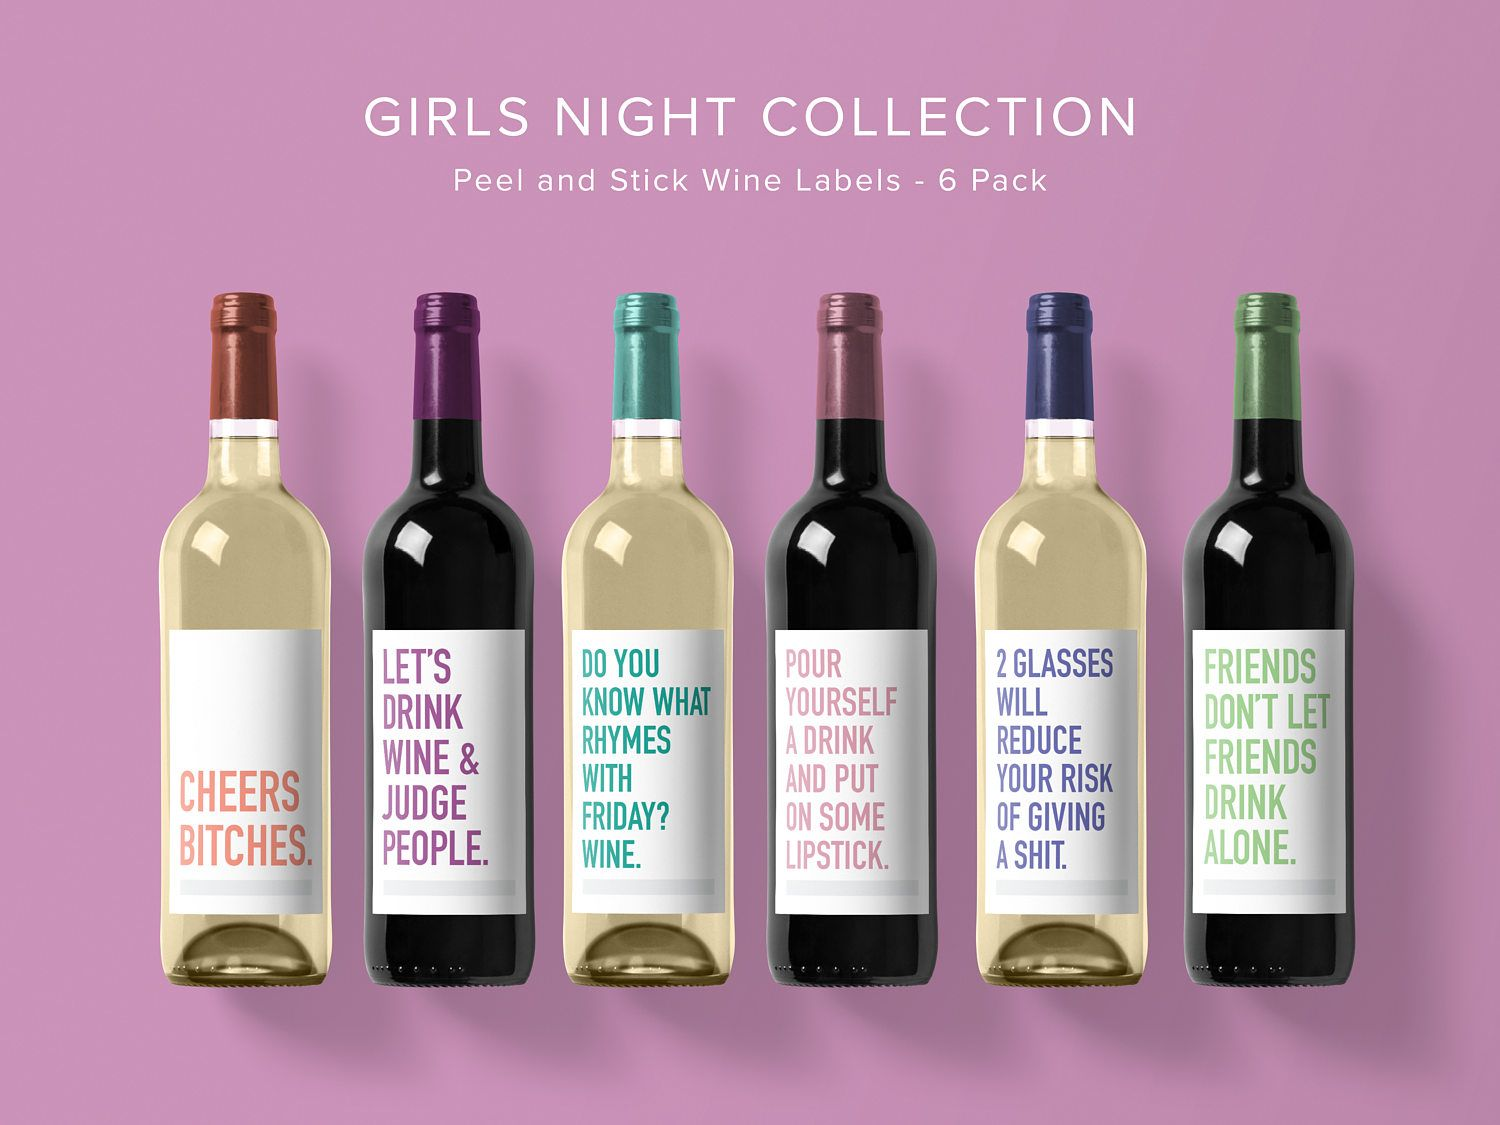 Girly Wine Label Collection Wine Label 6 Pack Funny Wine Labels Wine Label Wine Bottle Funny Wine Labels Wine Label Funny Wine Bottle Labels